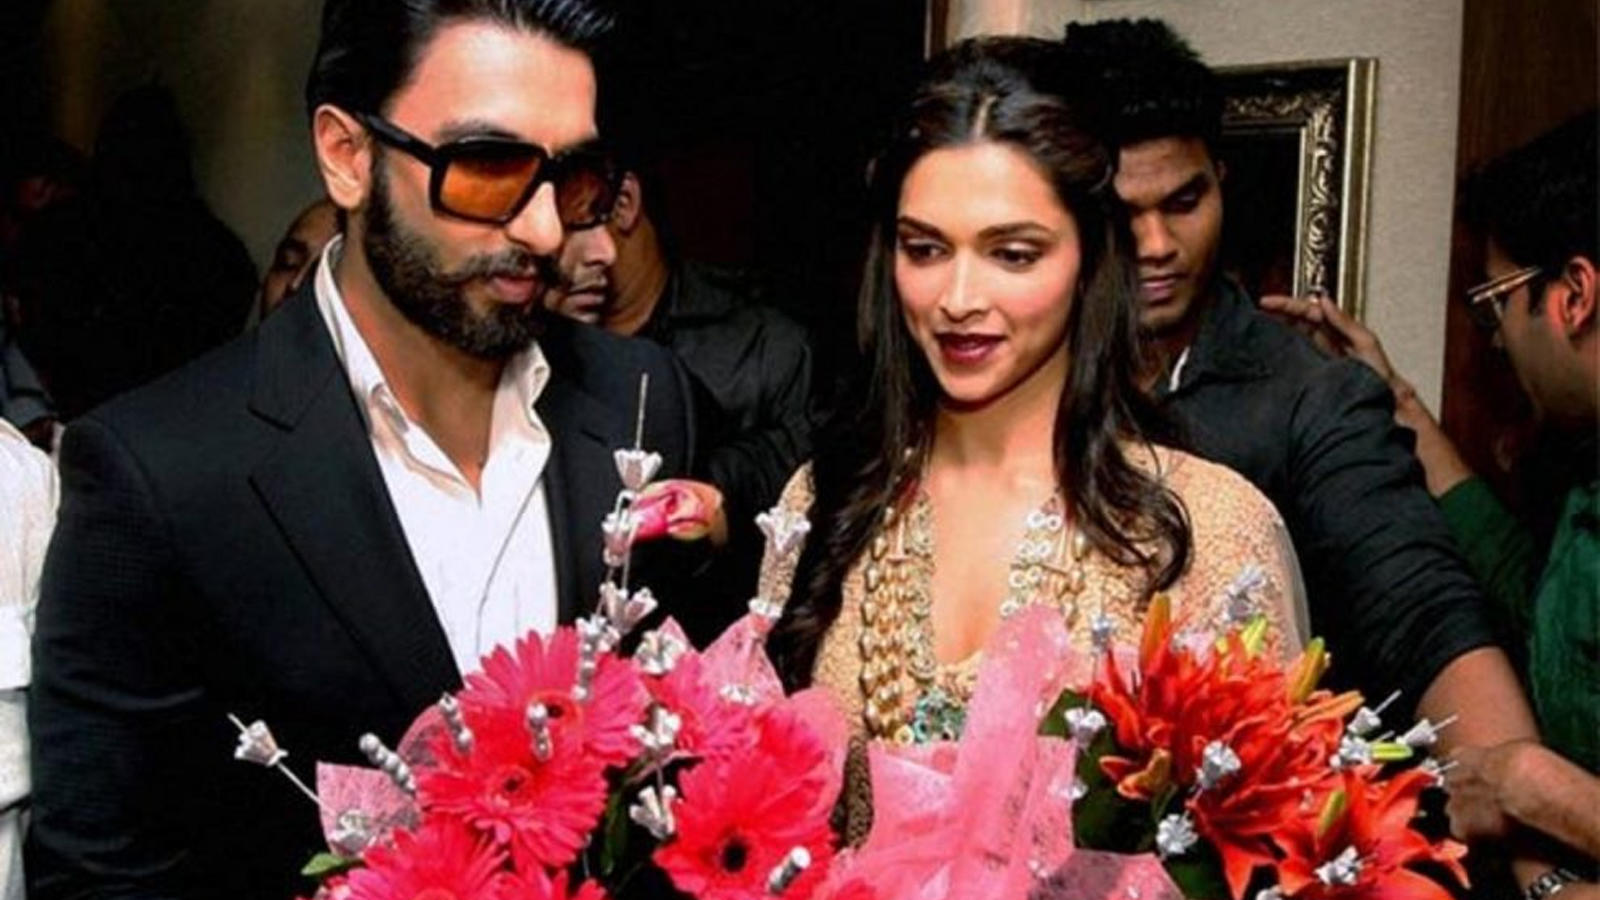 ranveer-singh-recalls-how-his-father-once-asked-him-why-he-was-spending-so-much-money-on-buying-deepika-padukone-flowers